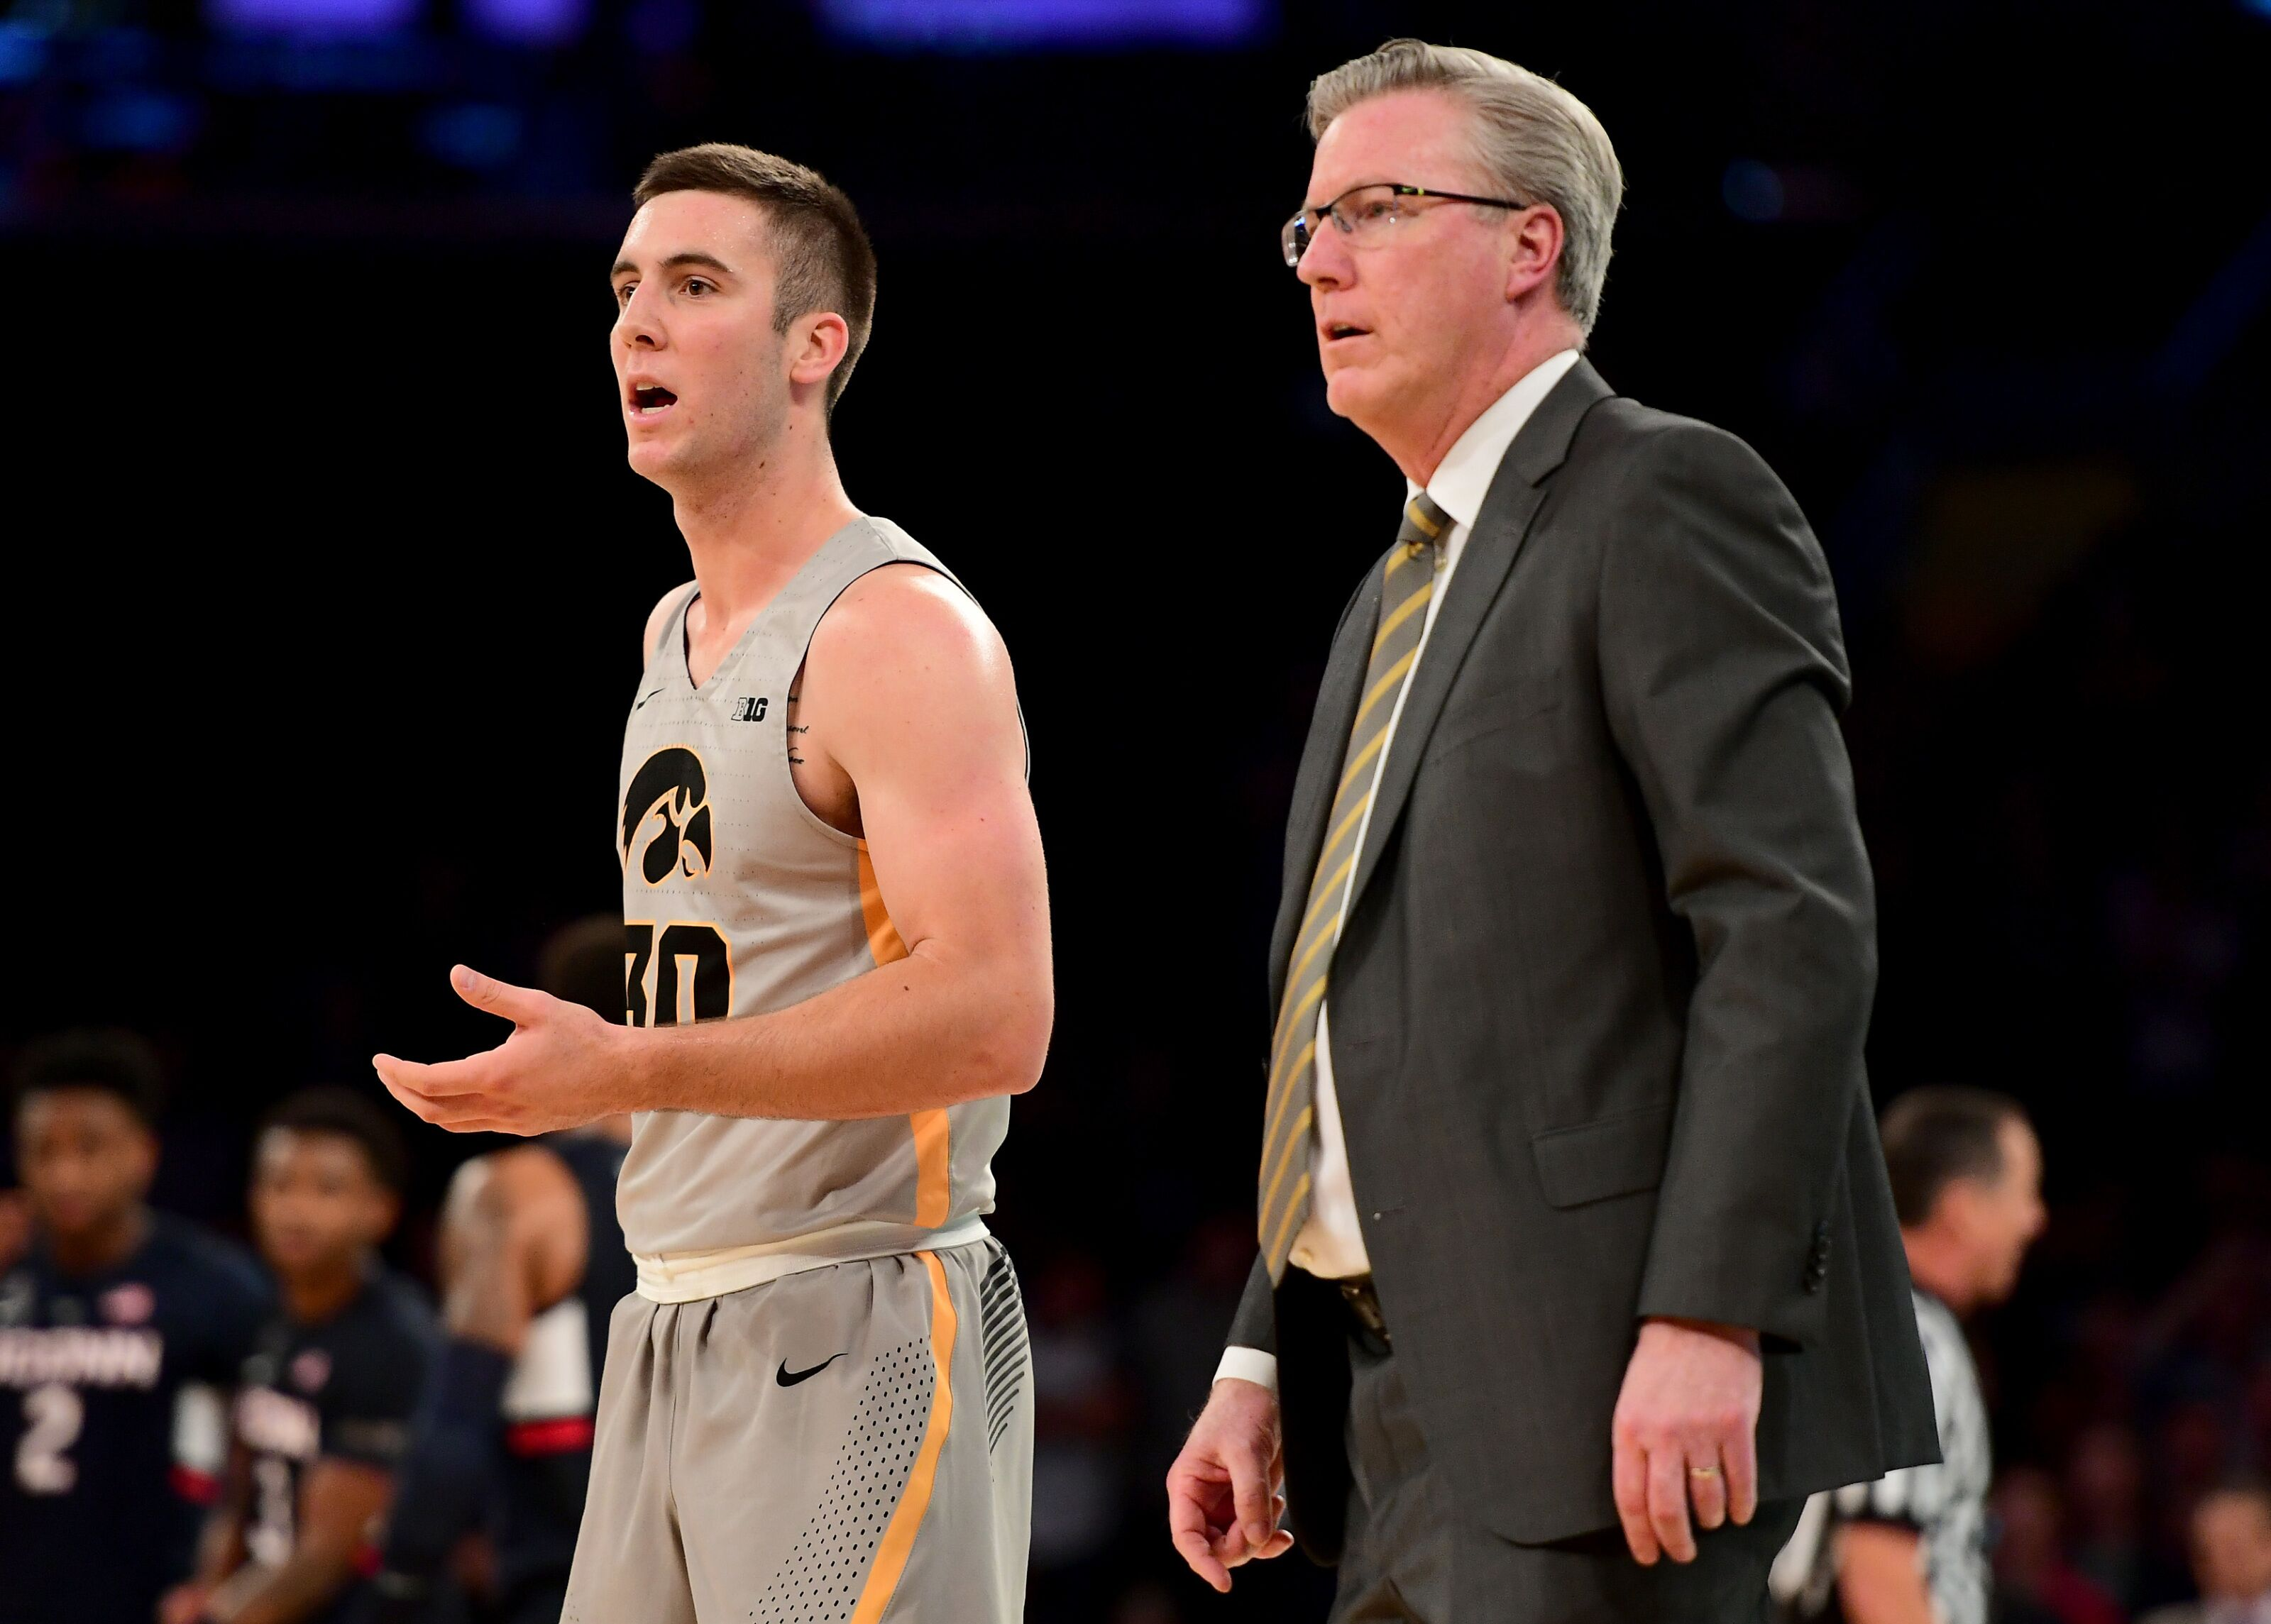 Iowa Hawkeyes: Happy Father's Day to these coaches